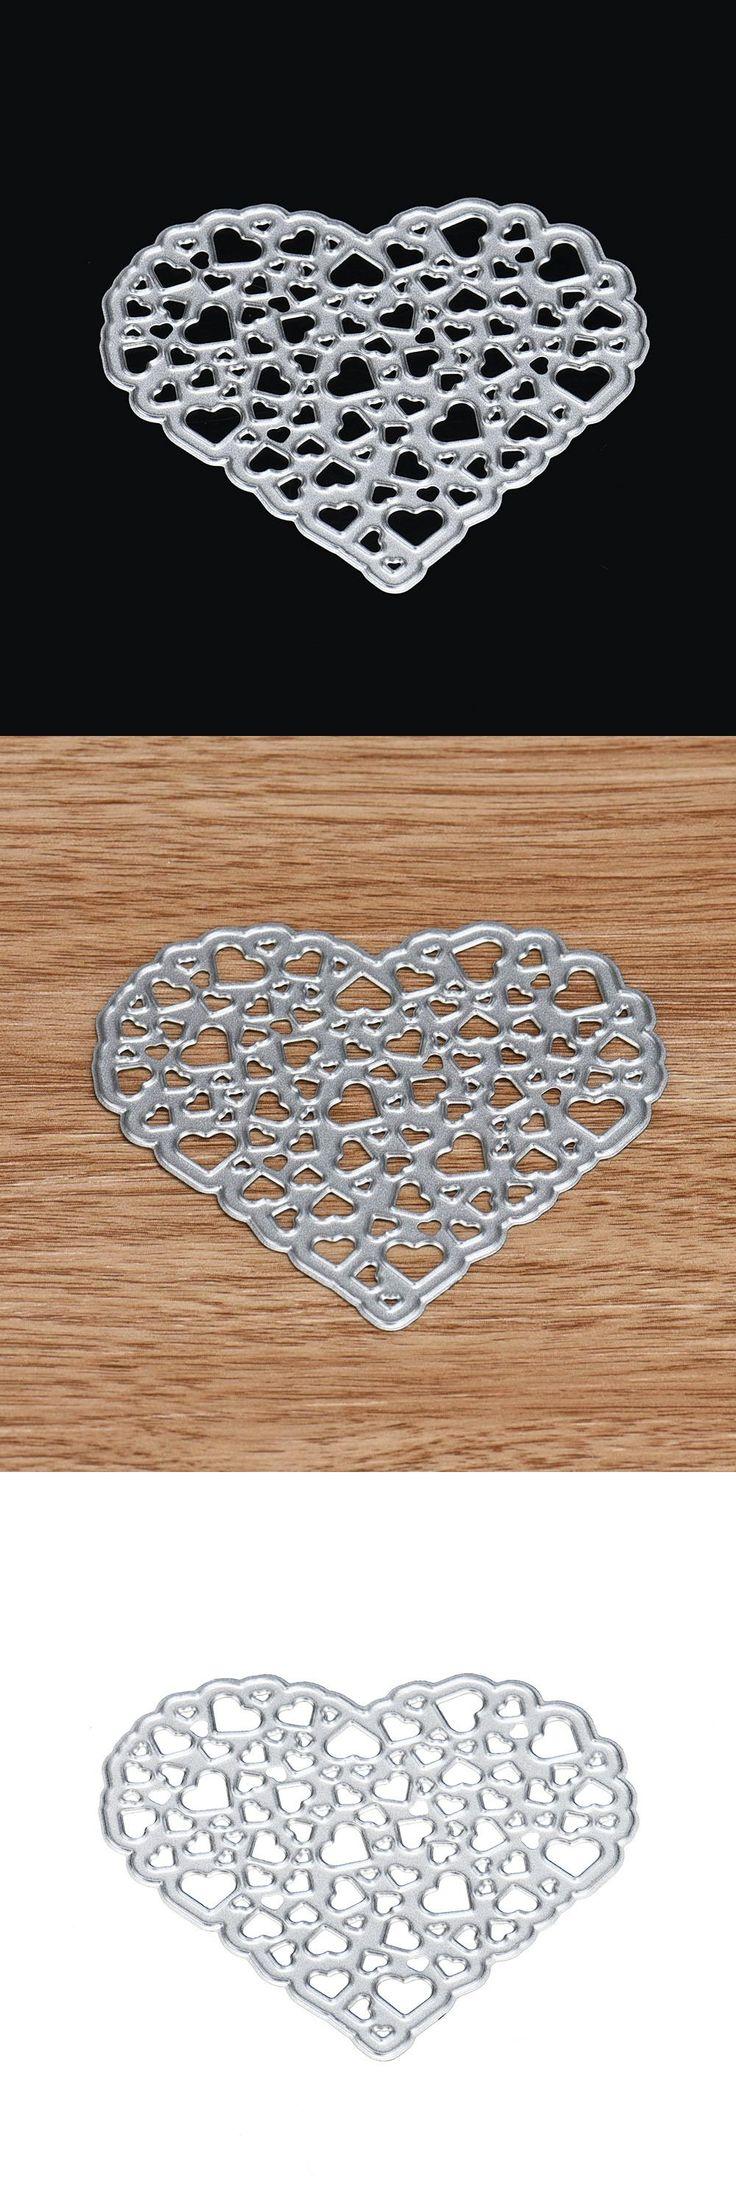 [Visit to Buy] 2017 HOT Big Shot  Heart Metal Cutting Dies Stencils For Walls DIY Scrapbooking Album Paper Card Craft I Carbon Sizzix Frame #Advertisement